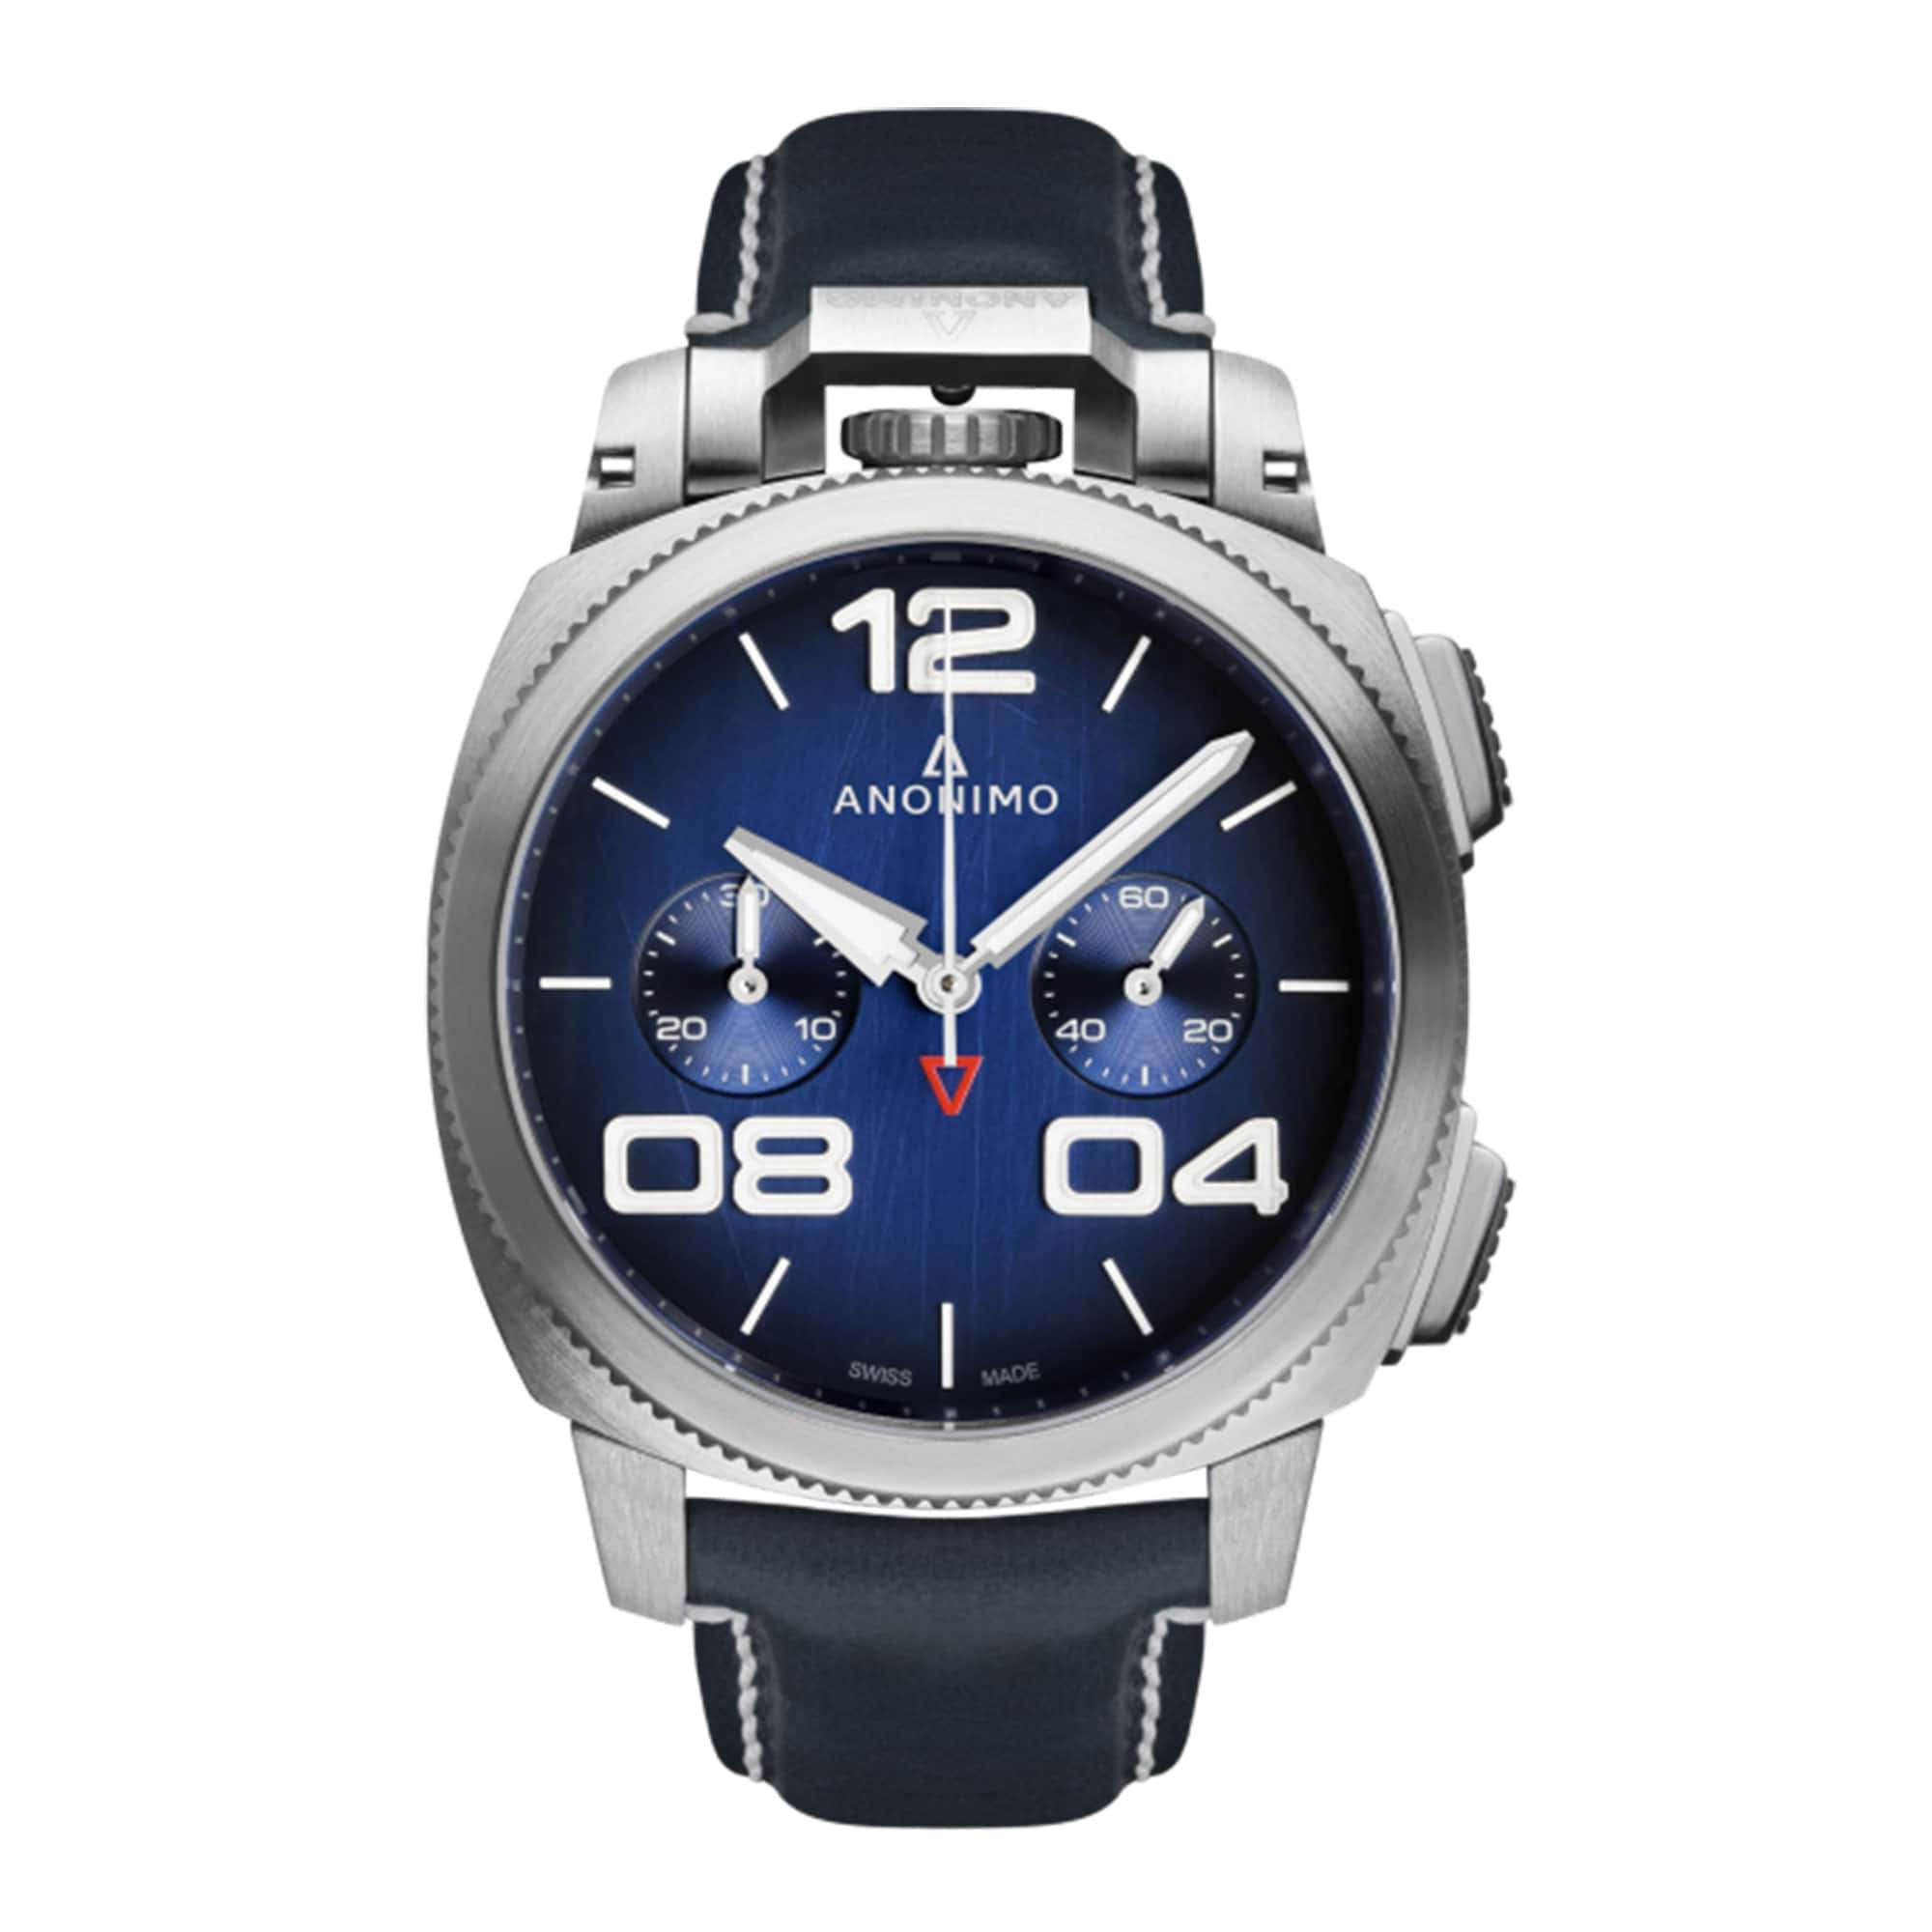 Anonimo Militare Chrono Stainless Steel AM-1120.01.003.A03 – Swiss Time